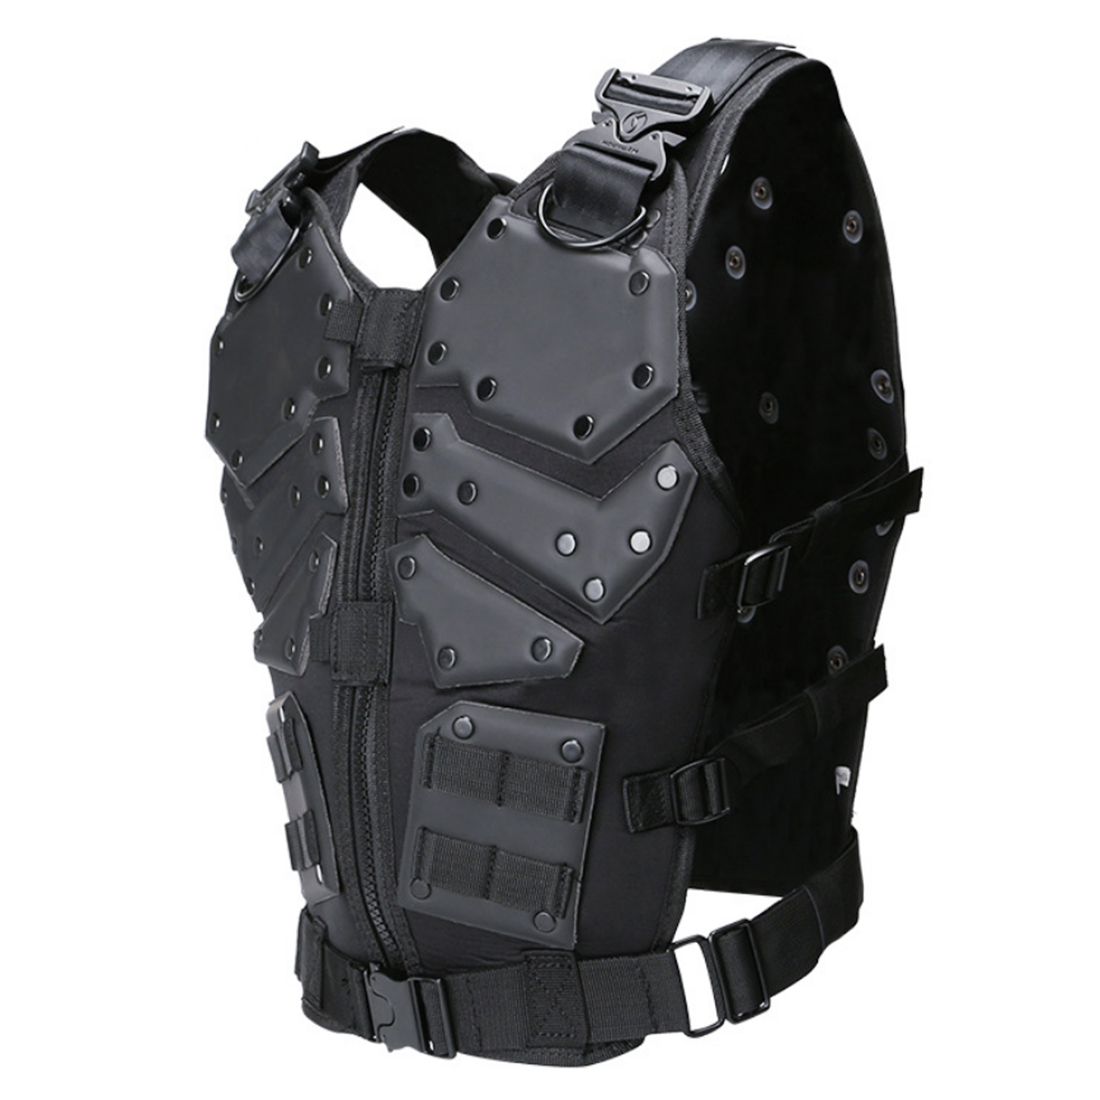 TF3 Special Forces outdoors tactics accessories for Airsoft Body Armor for 170-185cm military Outdoor Hunting sports activitiesTF3 Special Forces outdoors tactics accessories for Airsoft Body Armor for 170-185cm military Outdoor Hunting sports activities